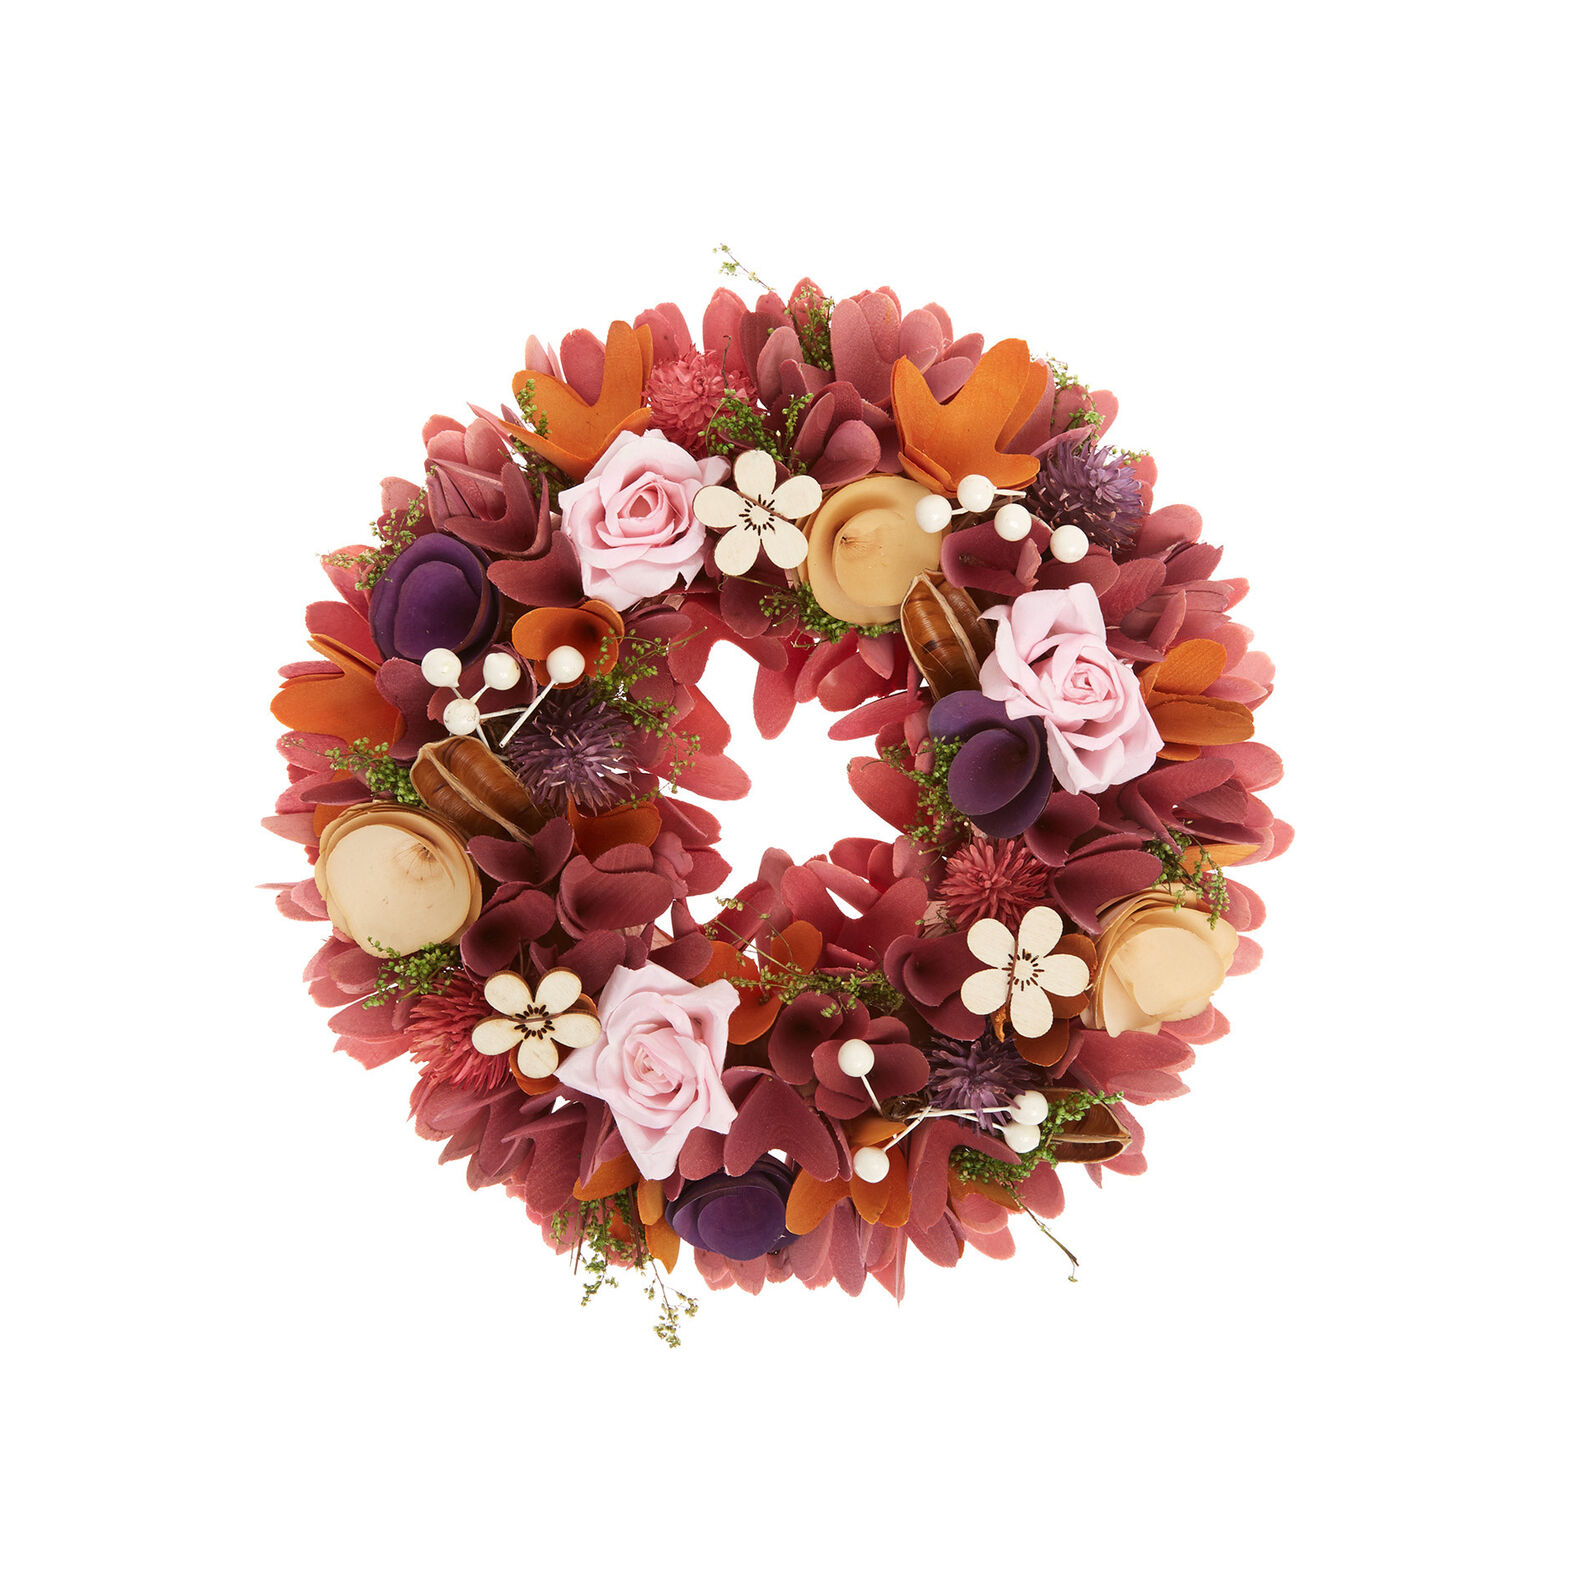 Decorative wreath in balsa wood